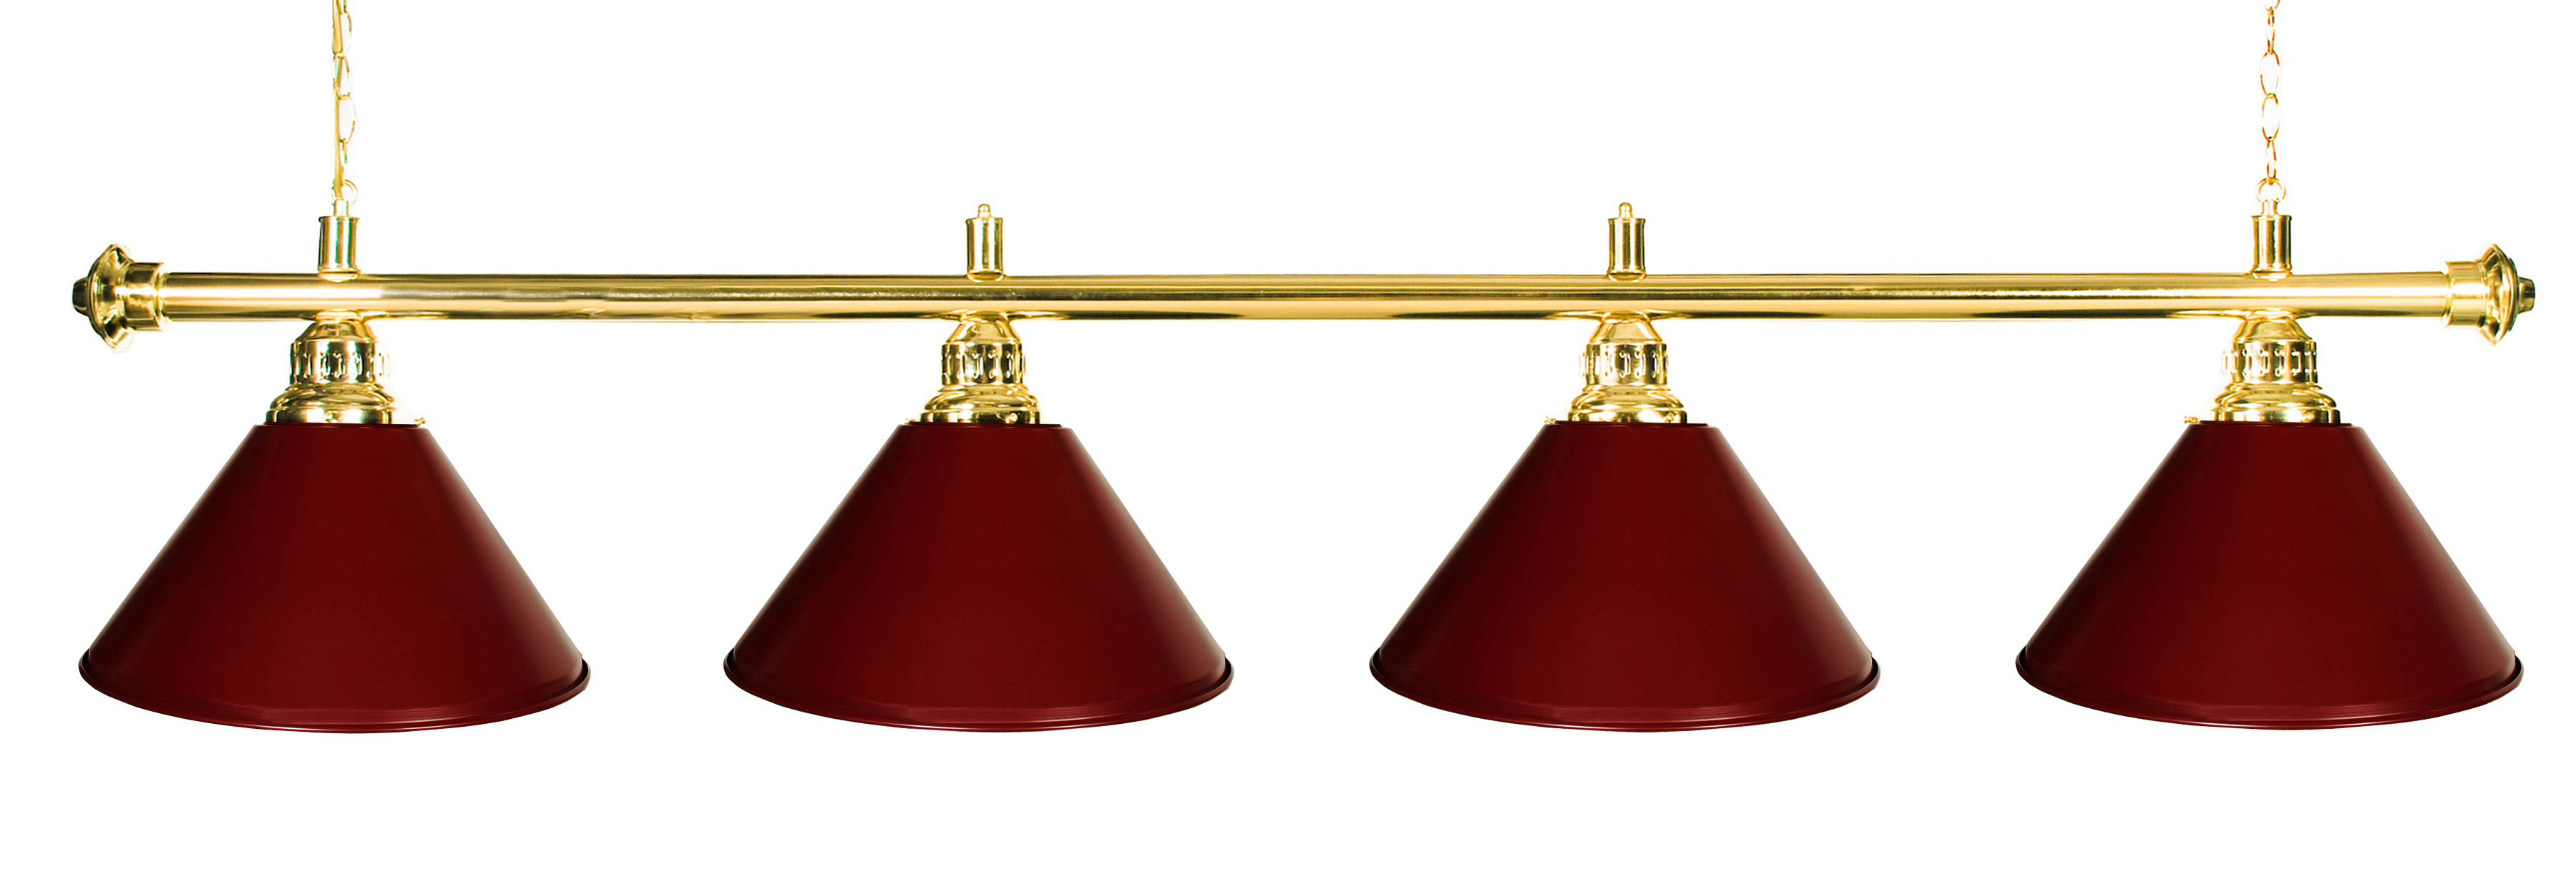 "72"" Pool Table Light Pool Table Light With Metal Burgundy Shades for 9' Table by"